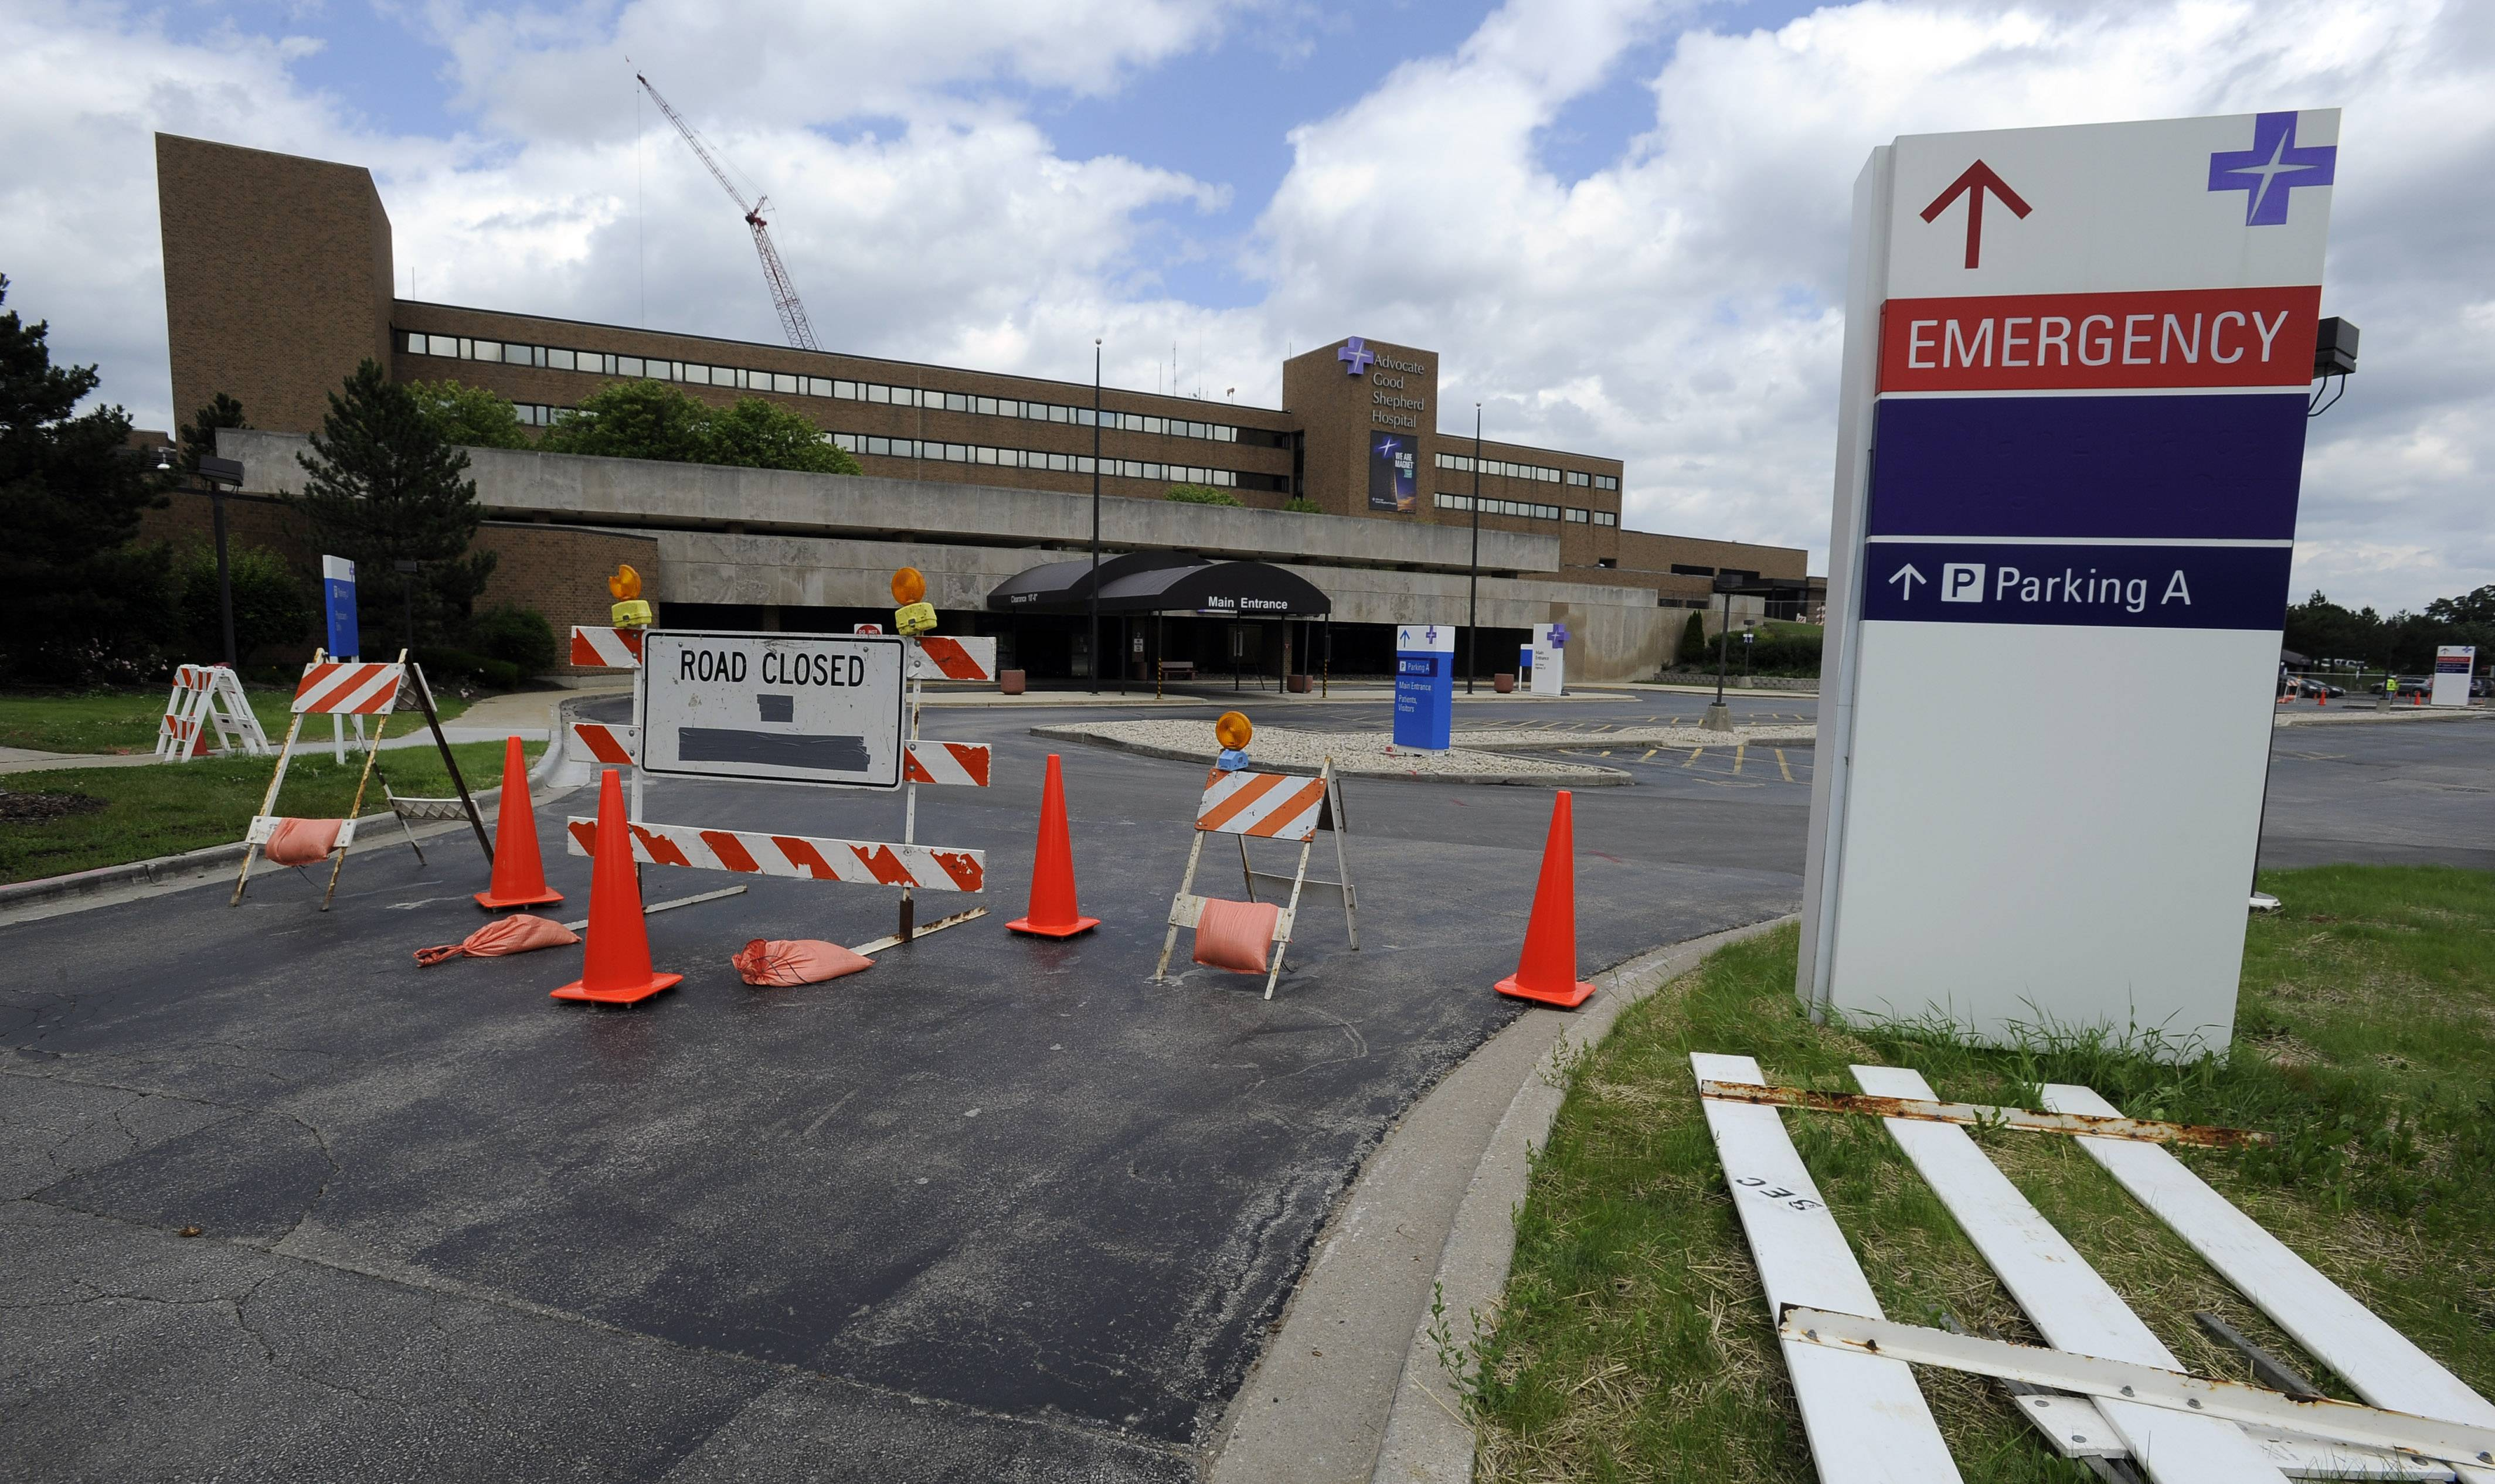 A new front entrance is part of an ongoing, $247 million modernization project at Advocate Good Shepherd Hospital near Lake Barrington. The main entrance will be closed 18 months while construction takes place.